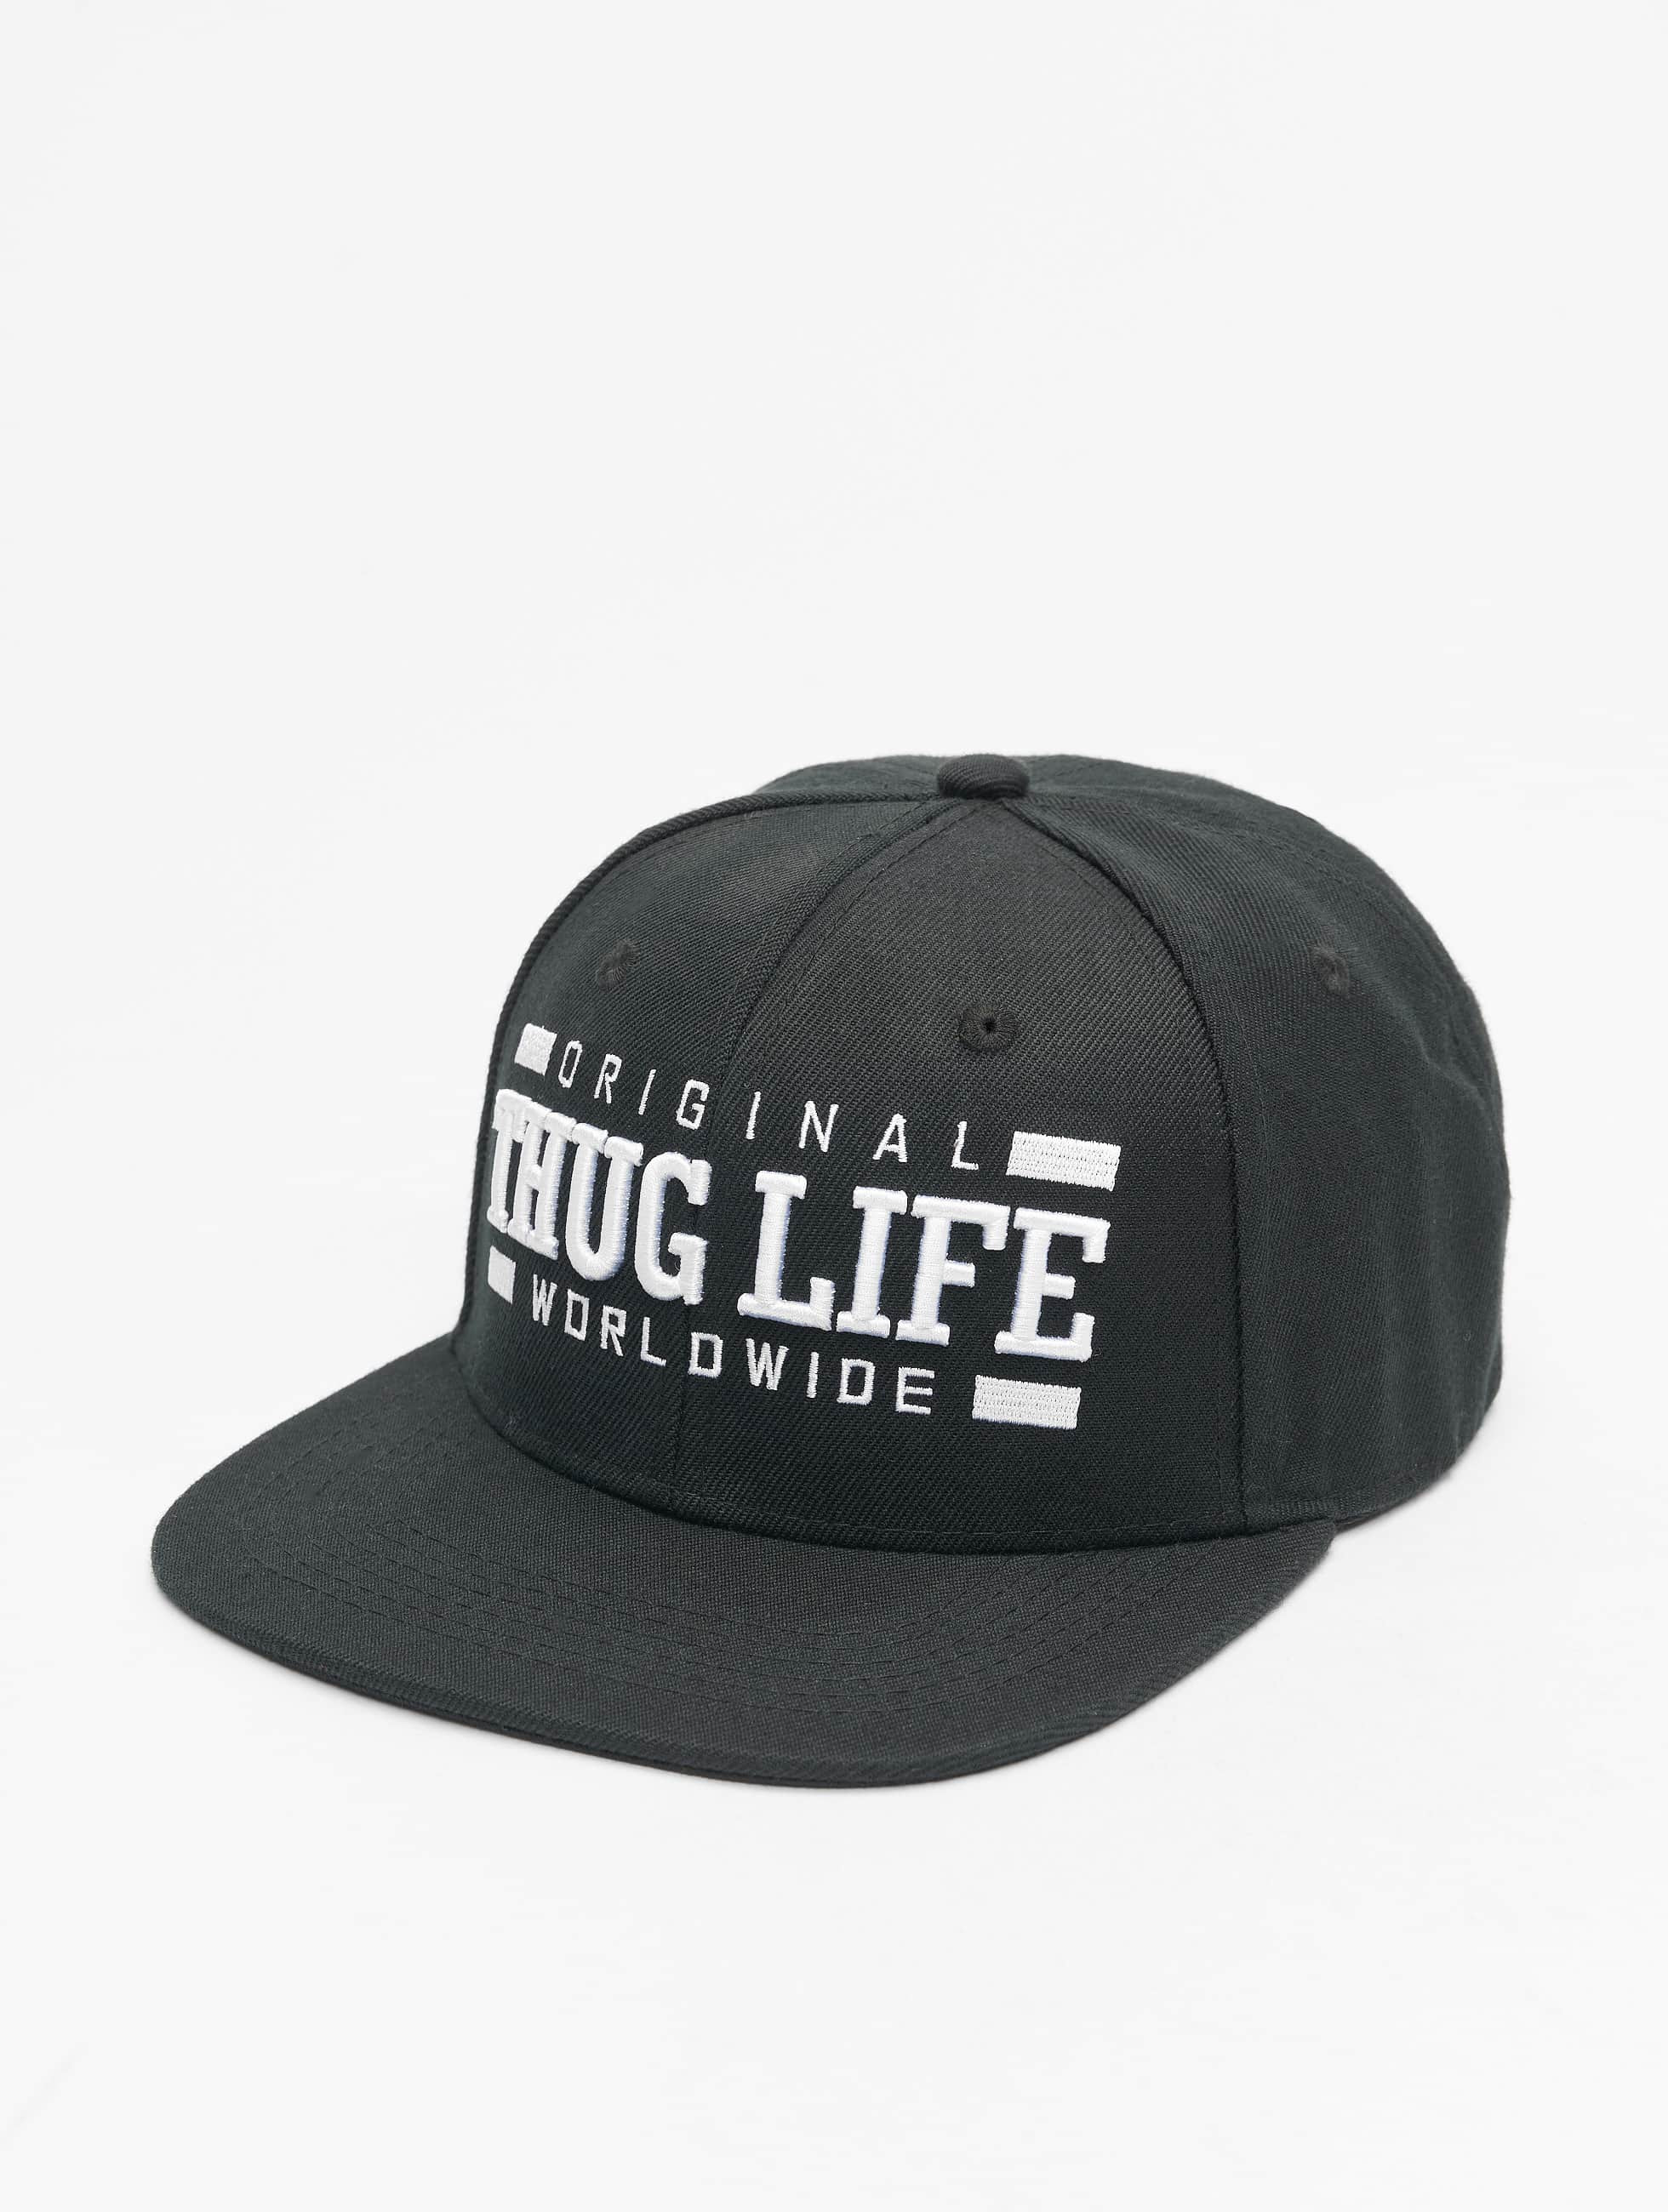 Thug Life / Fitted Cap Worldwide in black Adjustable